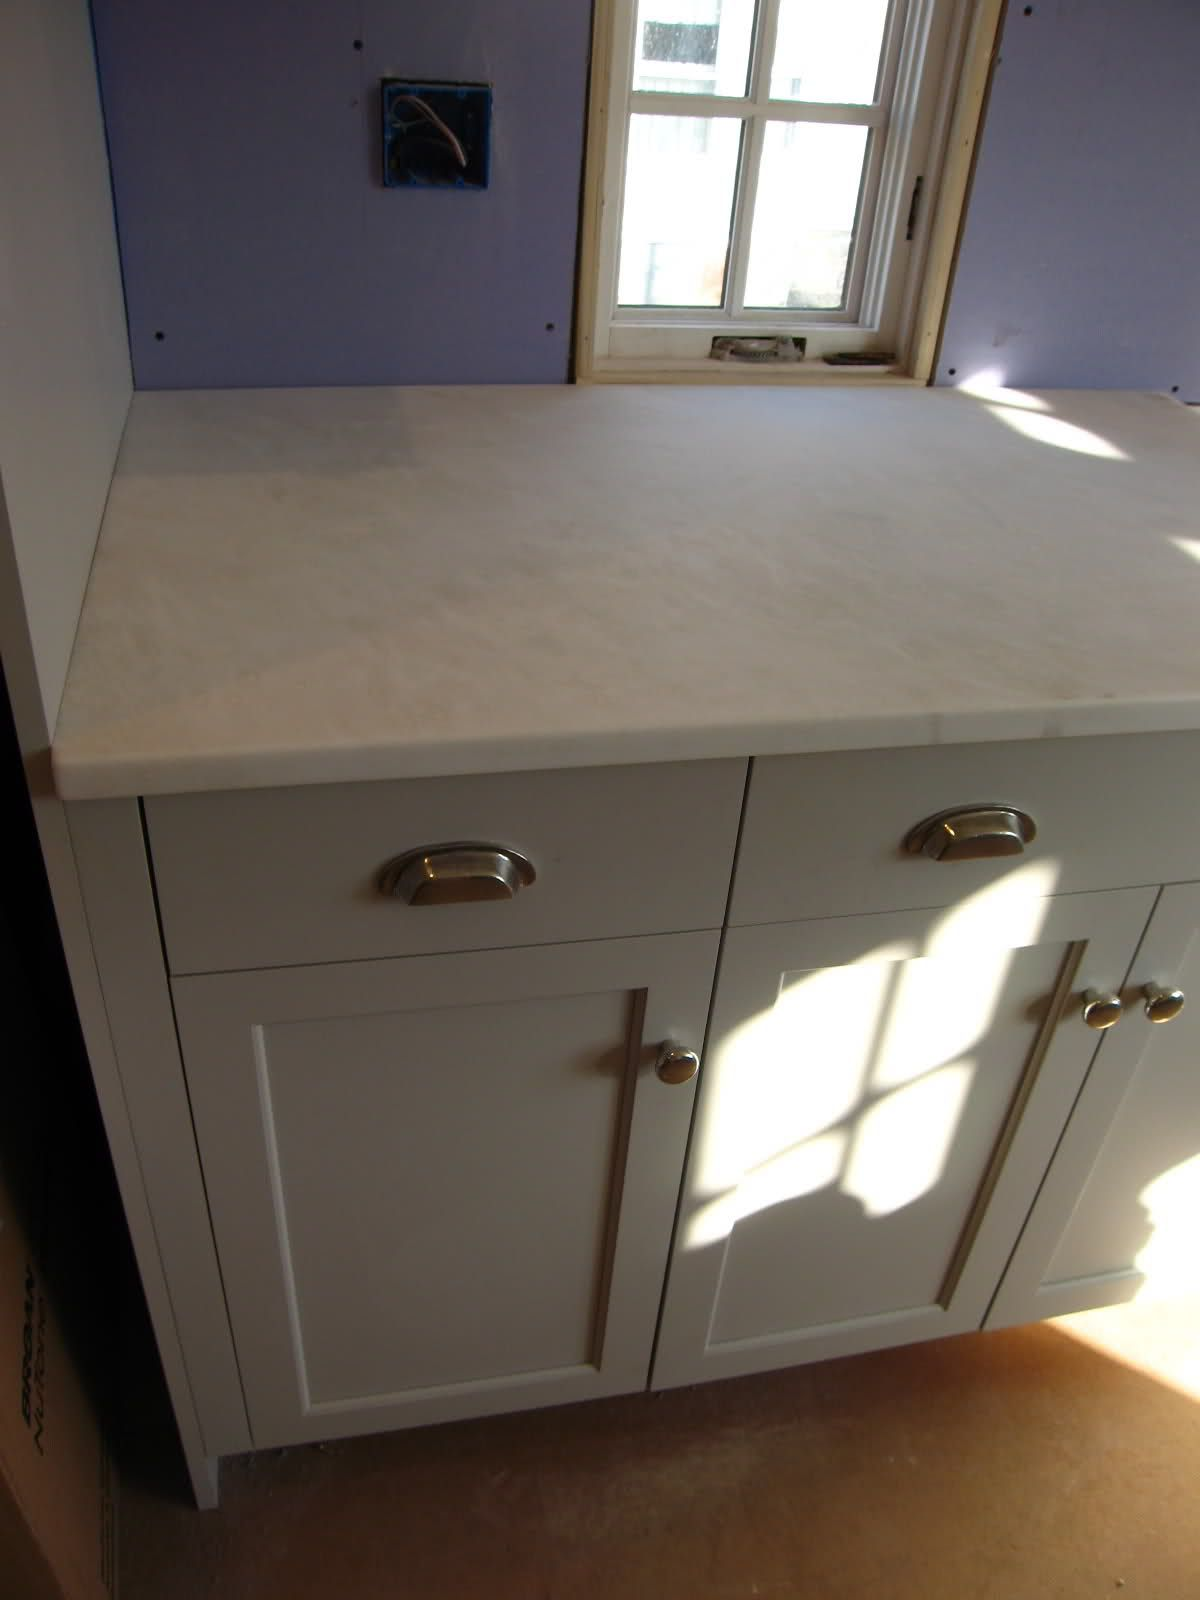 Best Cabinet Color Farrow And Ball Cornforth White Kitchen 640 x 480